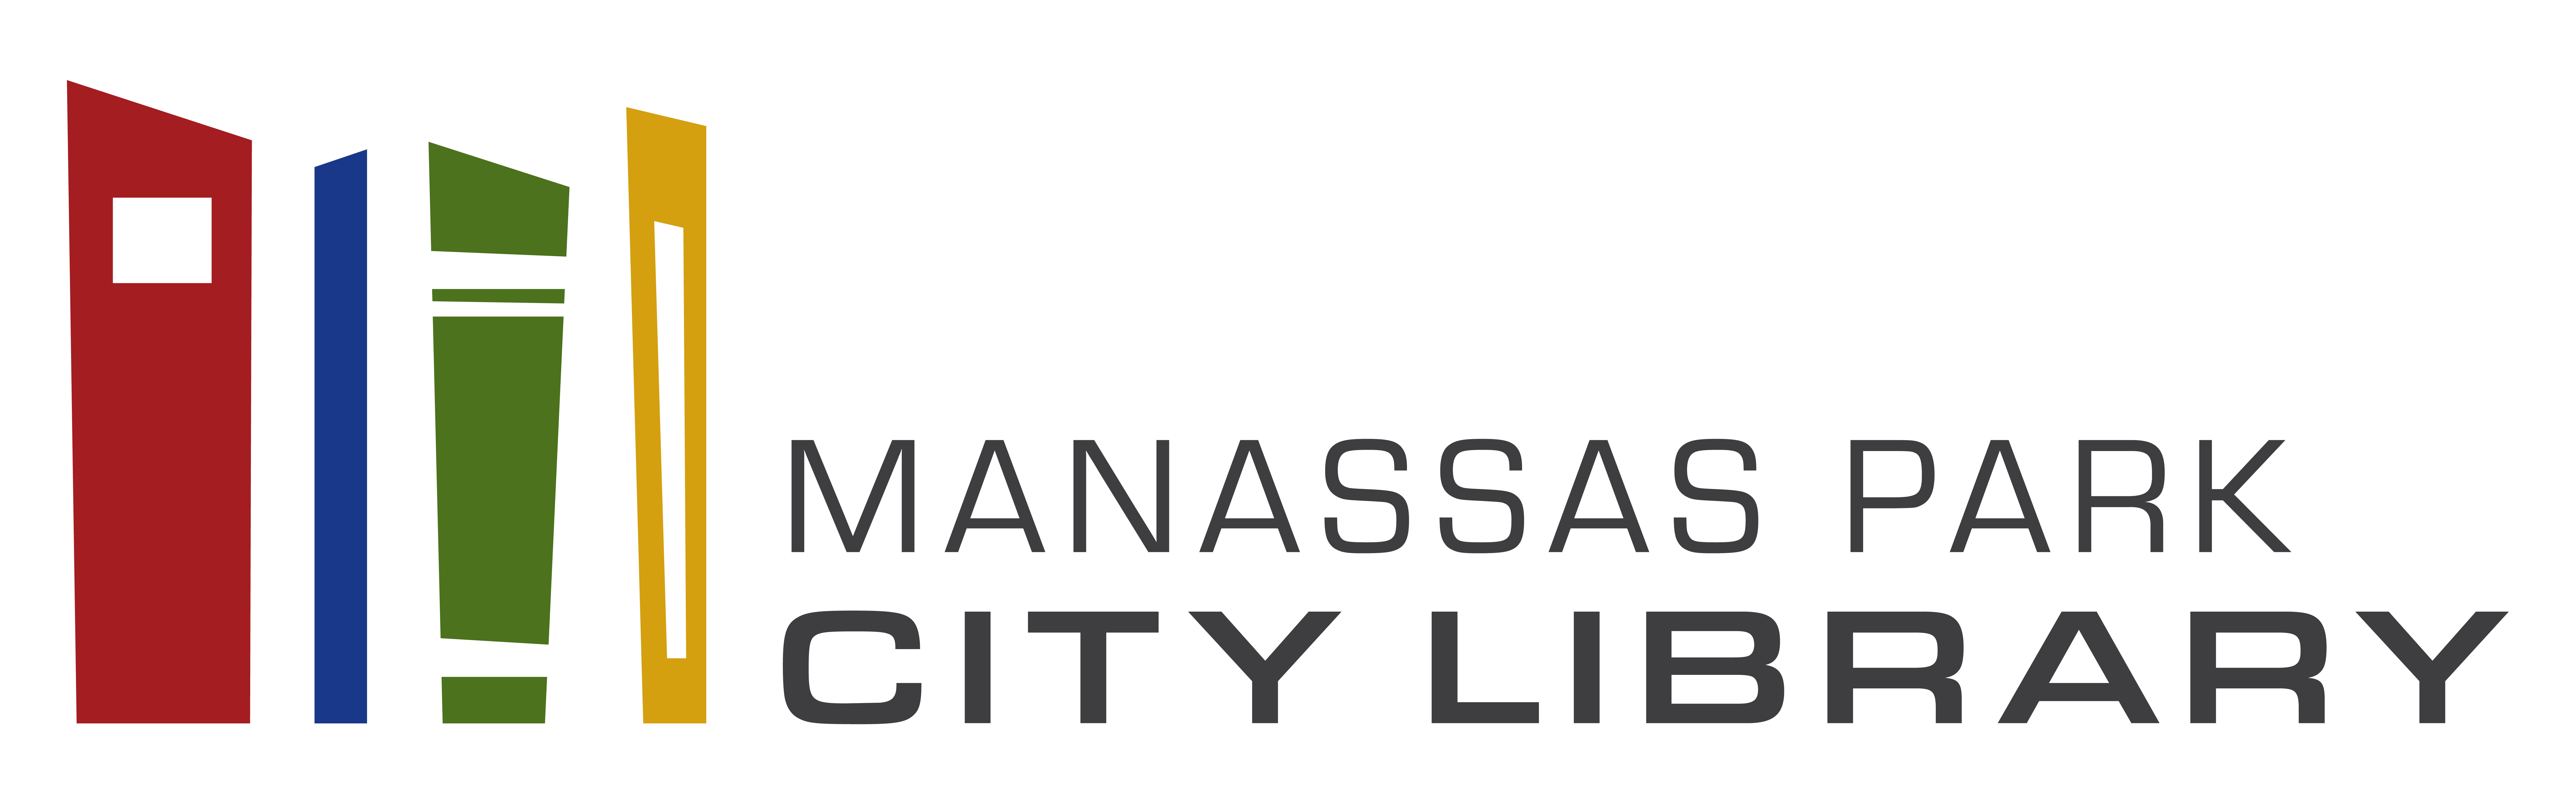 Manassas Park City Library